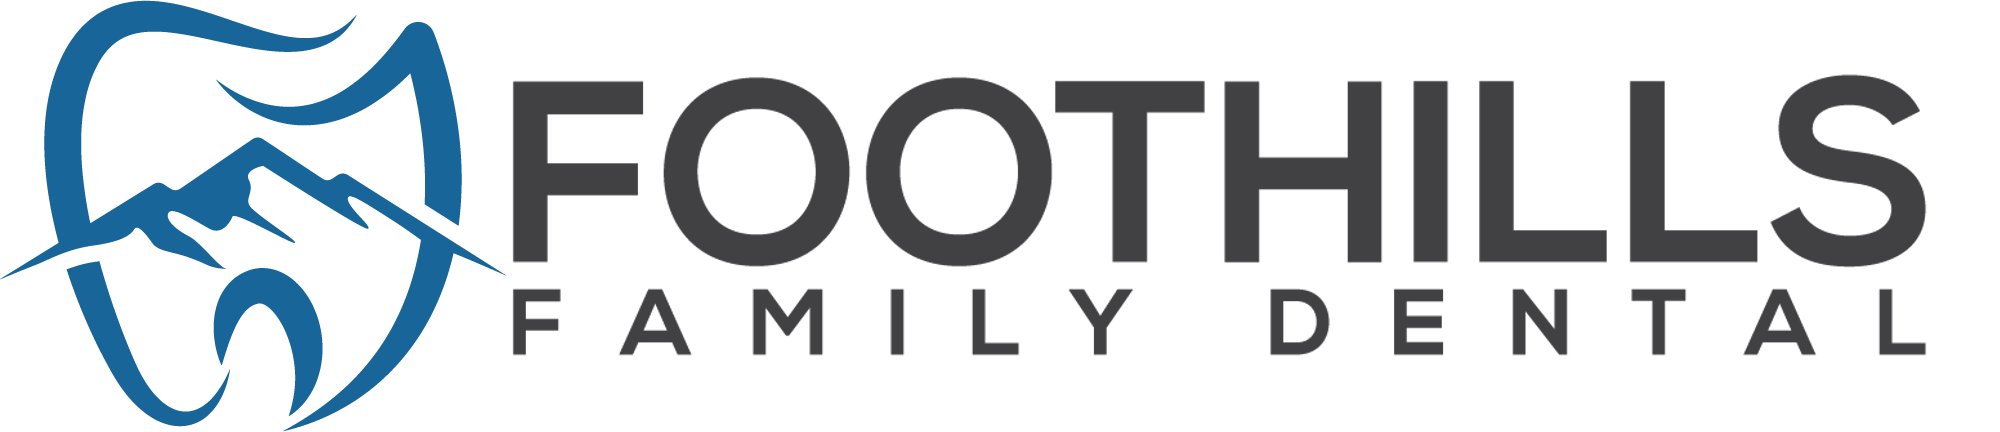 Foothills Family Dental